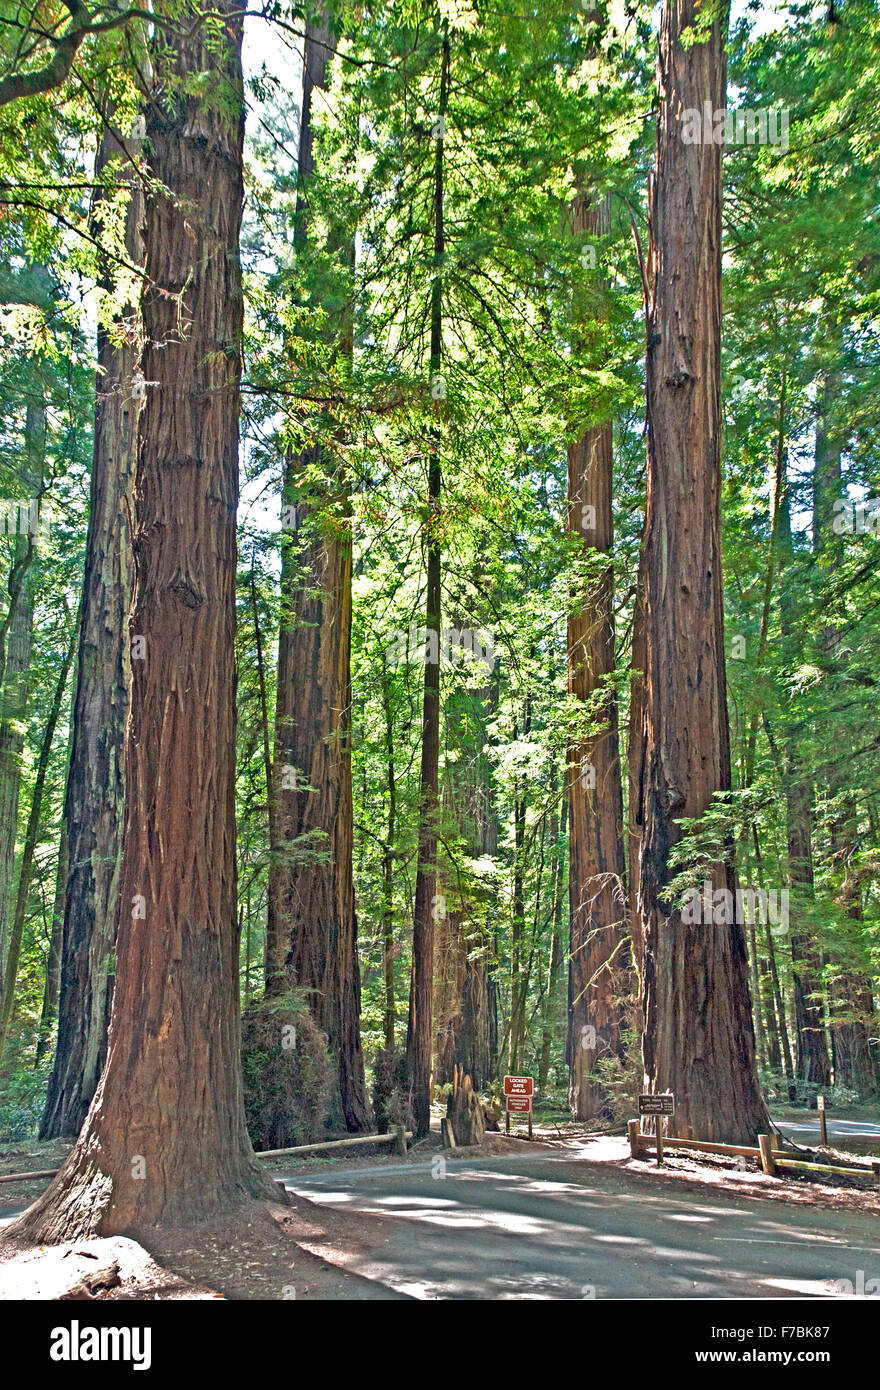 Walking trails thread through these stately redwood trees at Armstrong Redwoods State Natural Preserve near Guerneville, - Stock Image